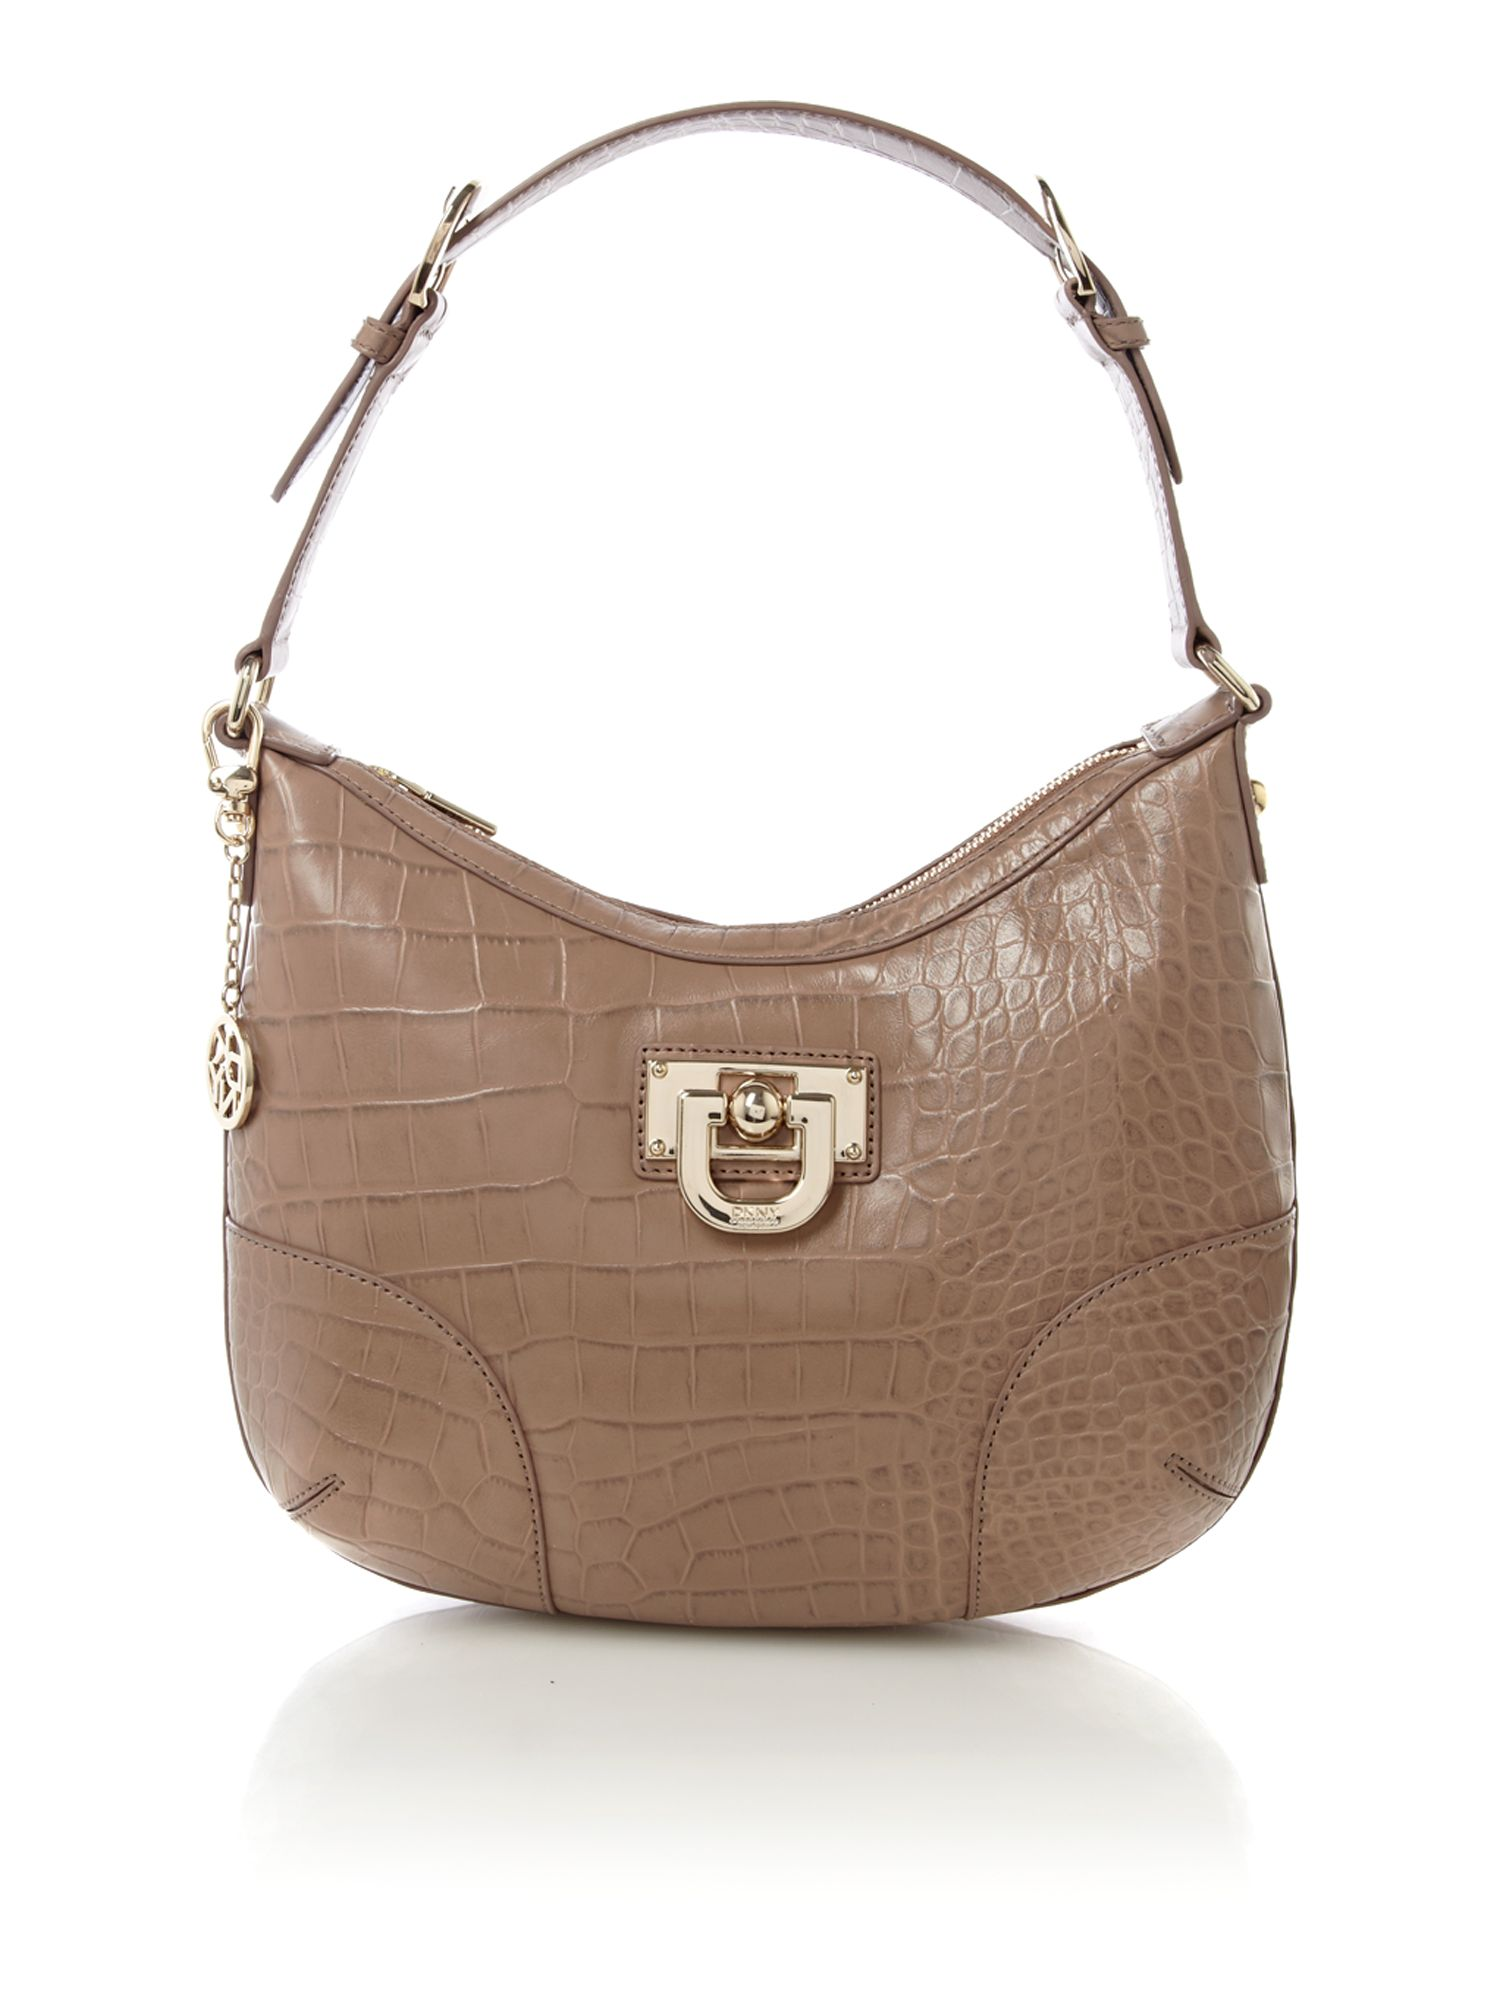 7d45fcb490 Lyst - Dkny Dlock Croco Small Hobo Bag